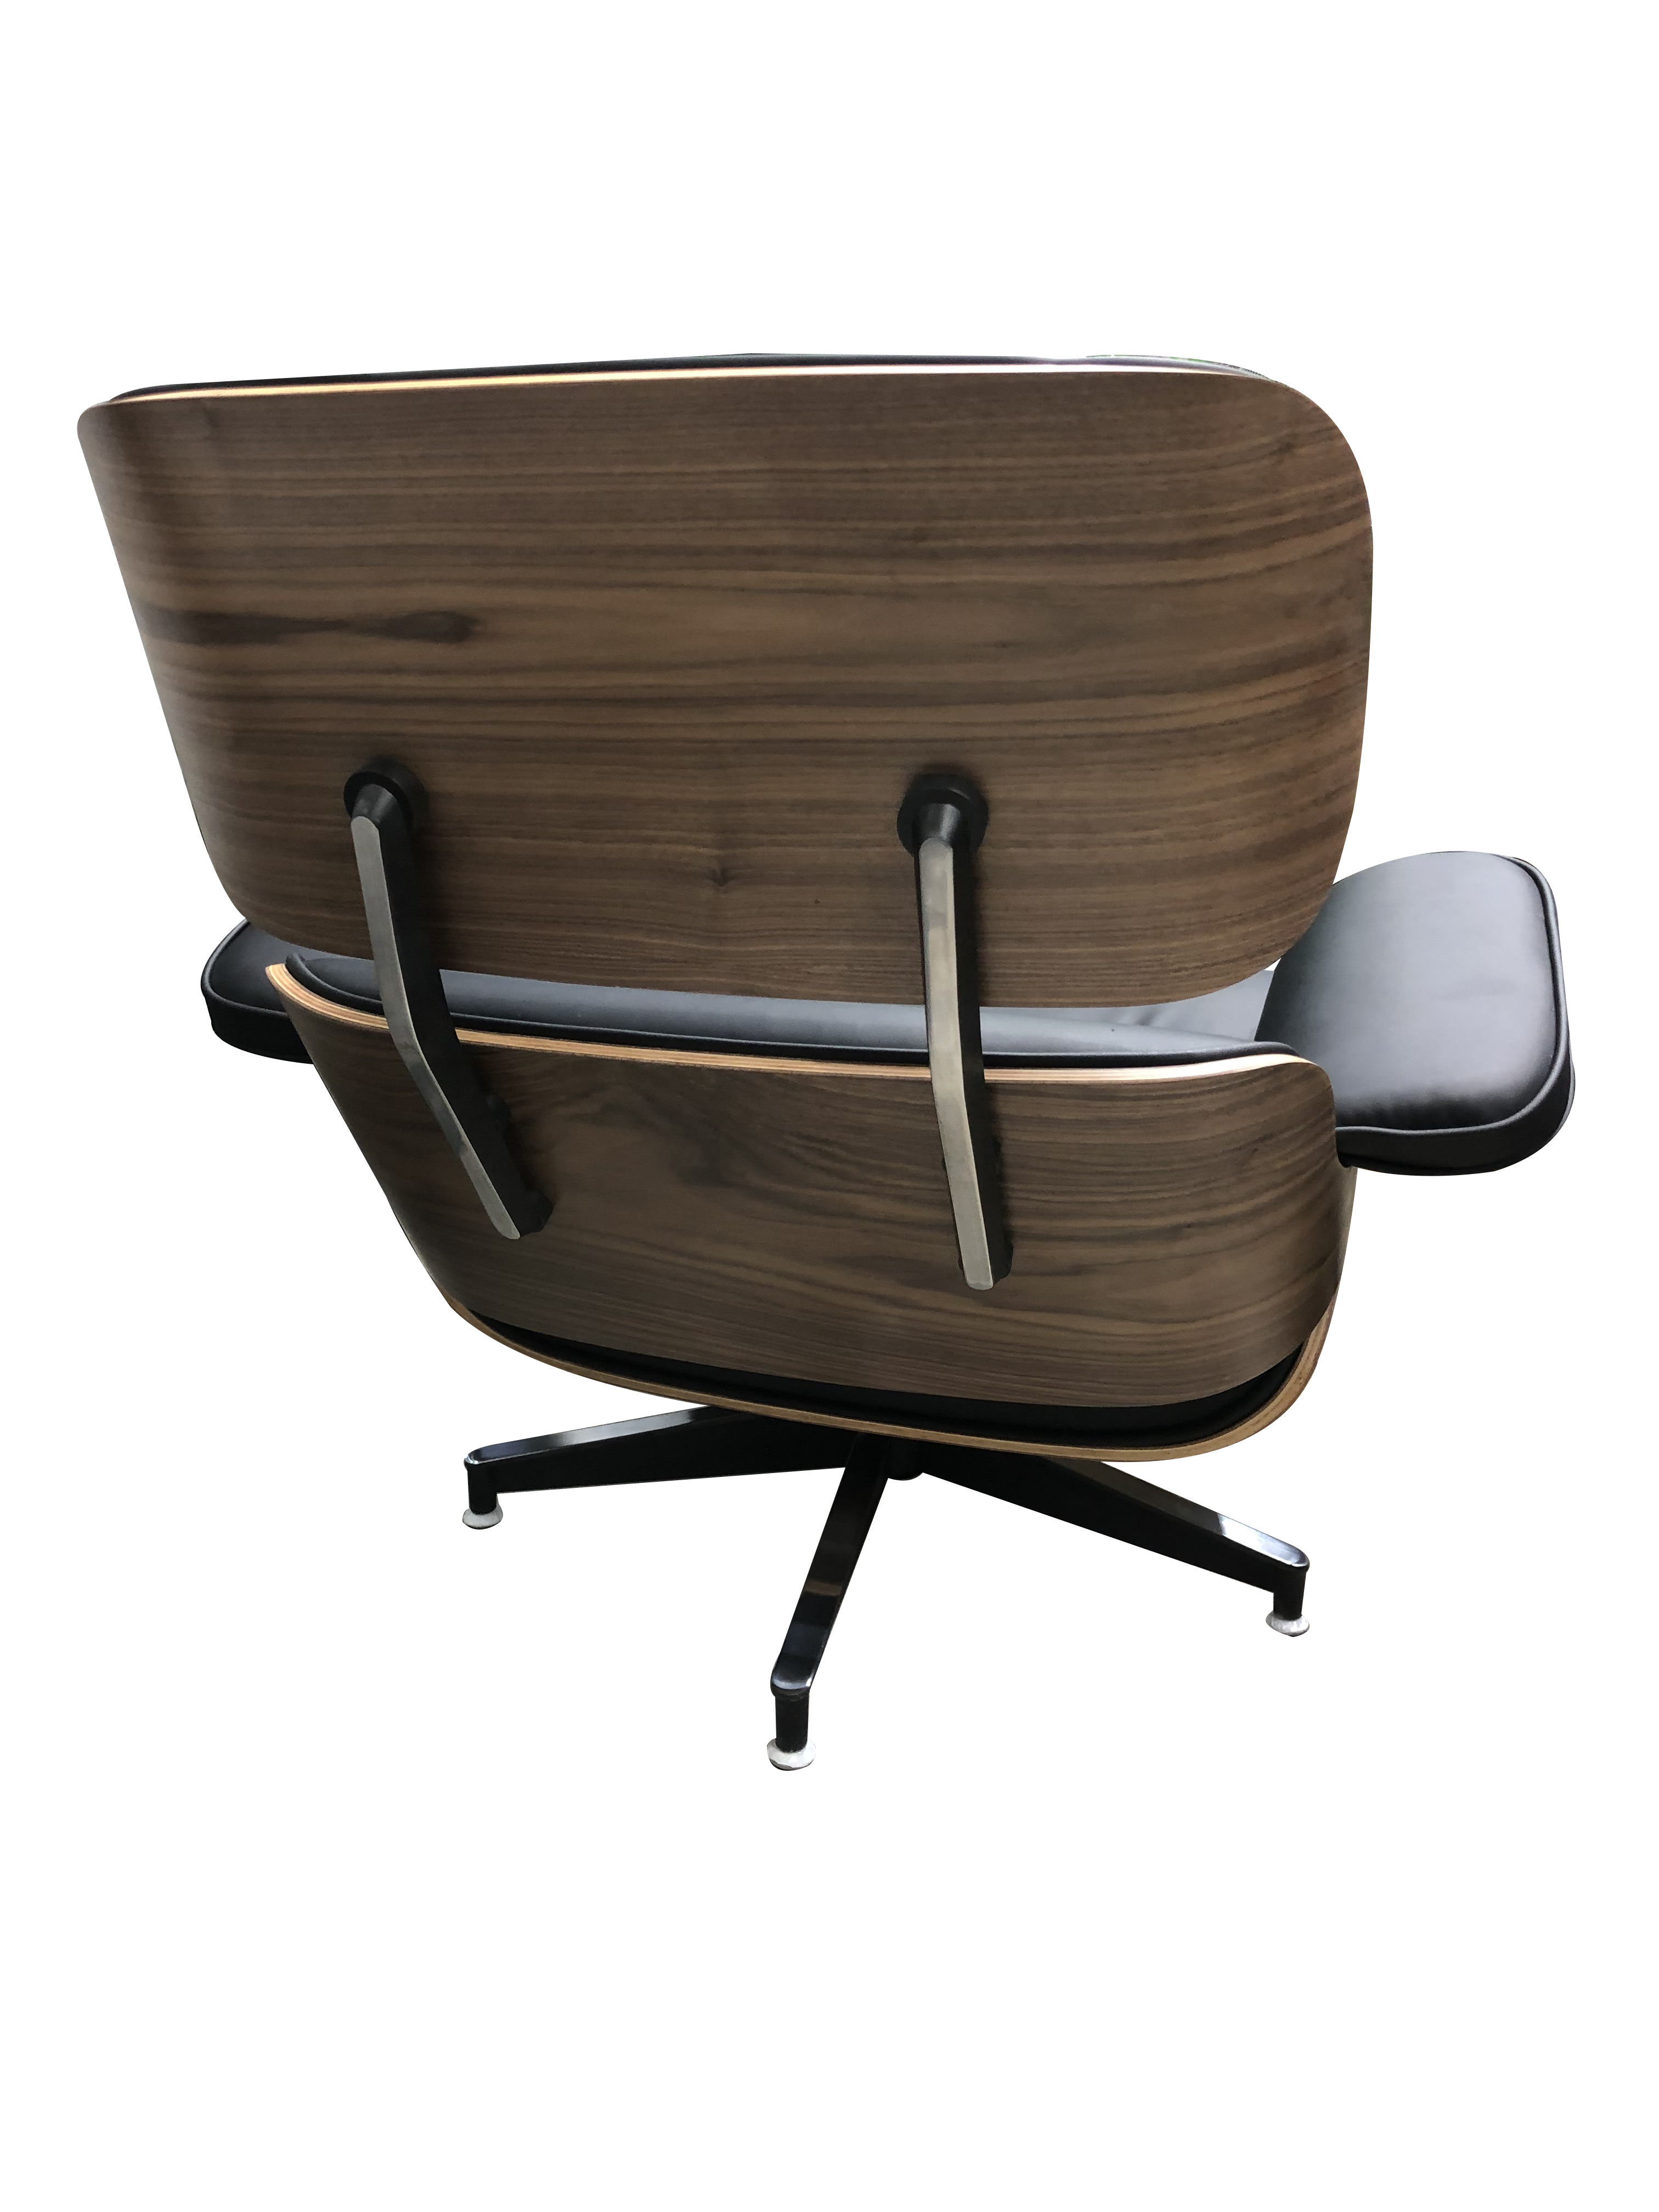 Surprising Replica Eames Chair And Ottoman In High Quality Black Pu Camellatalisay Diy Chair Ideas Camellatalisaycom